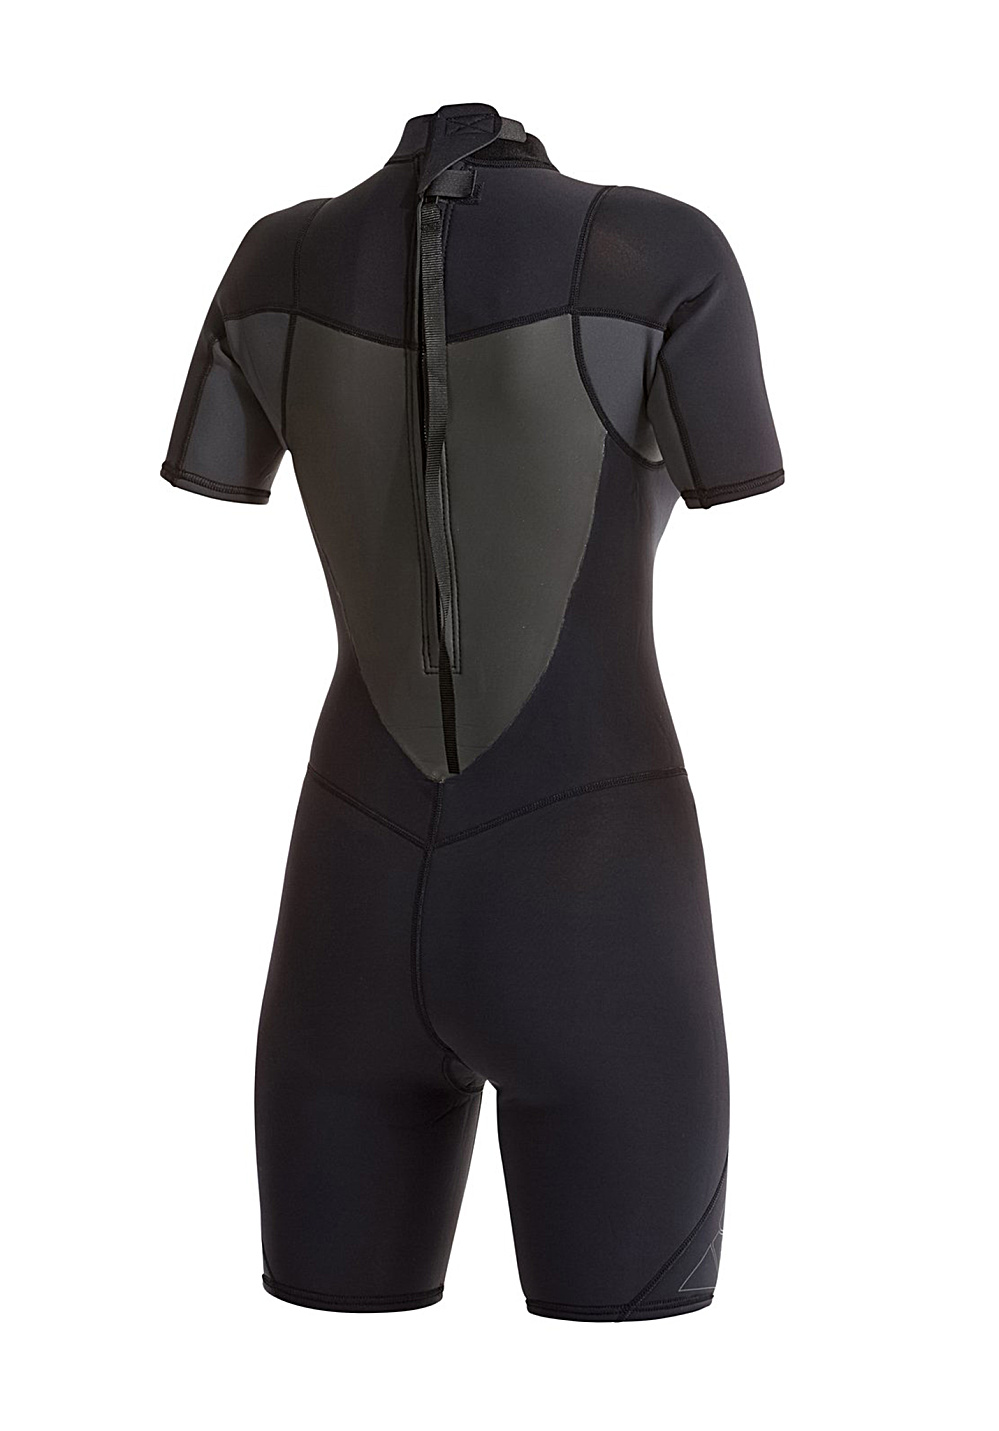 a016c14b15 Next. -20%. This product is currently out of stock. Roxy. 2mm Syncro BZ  Springsuit - Wetsuit for Kids Girls